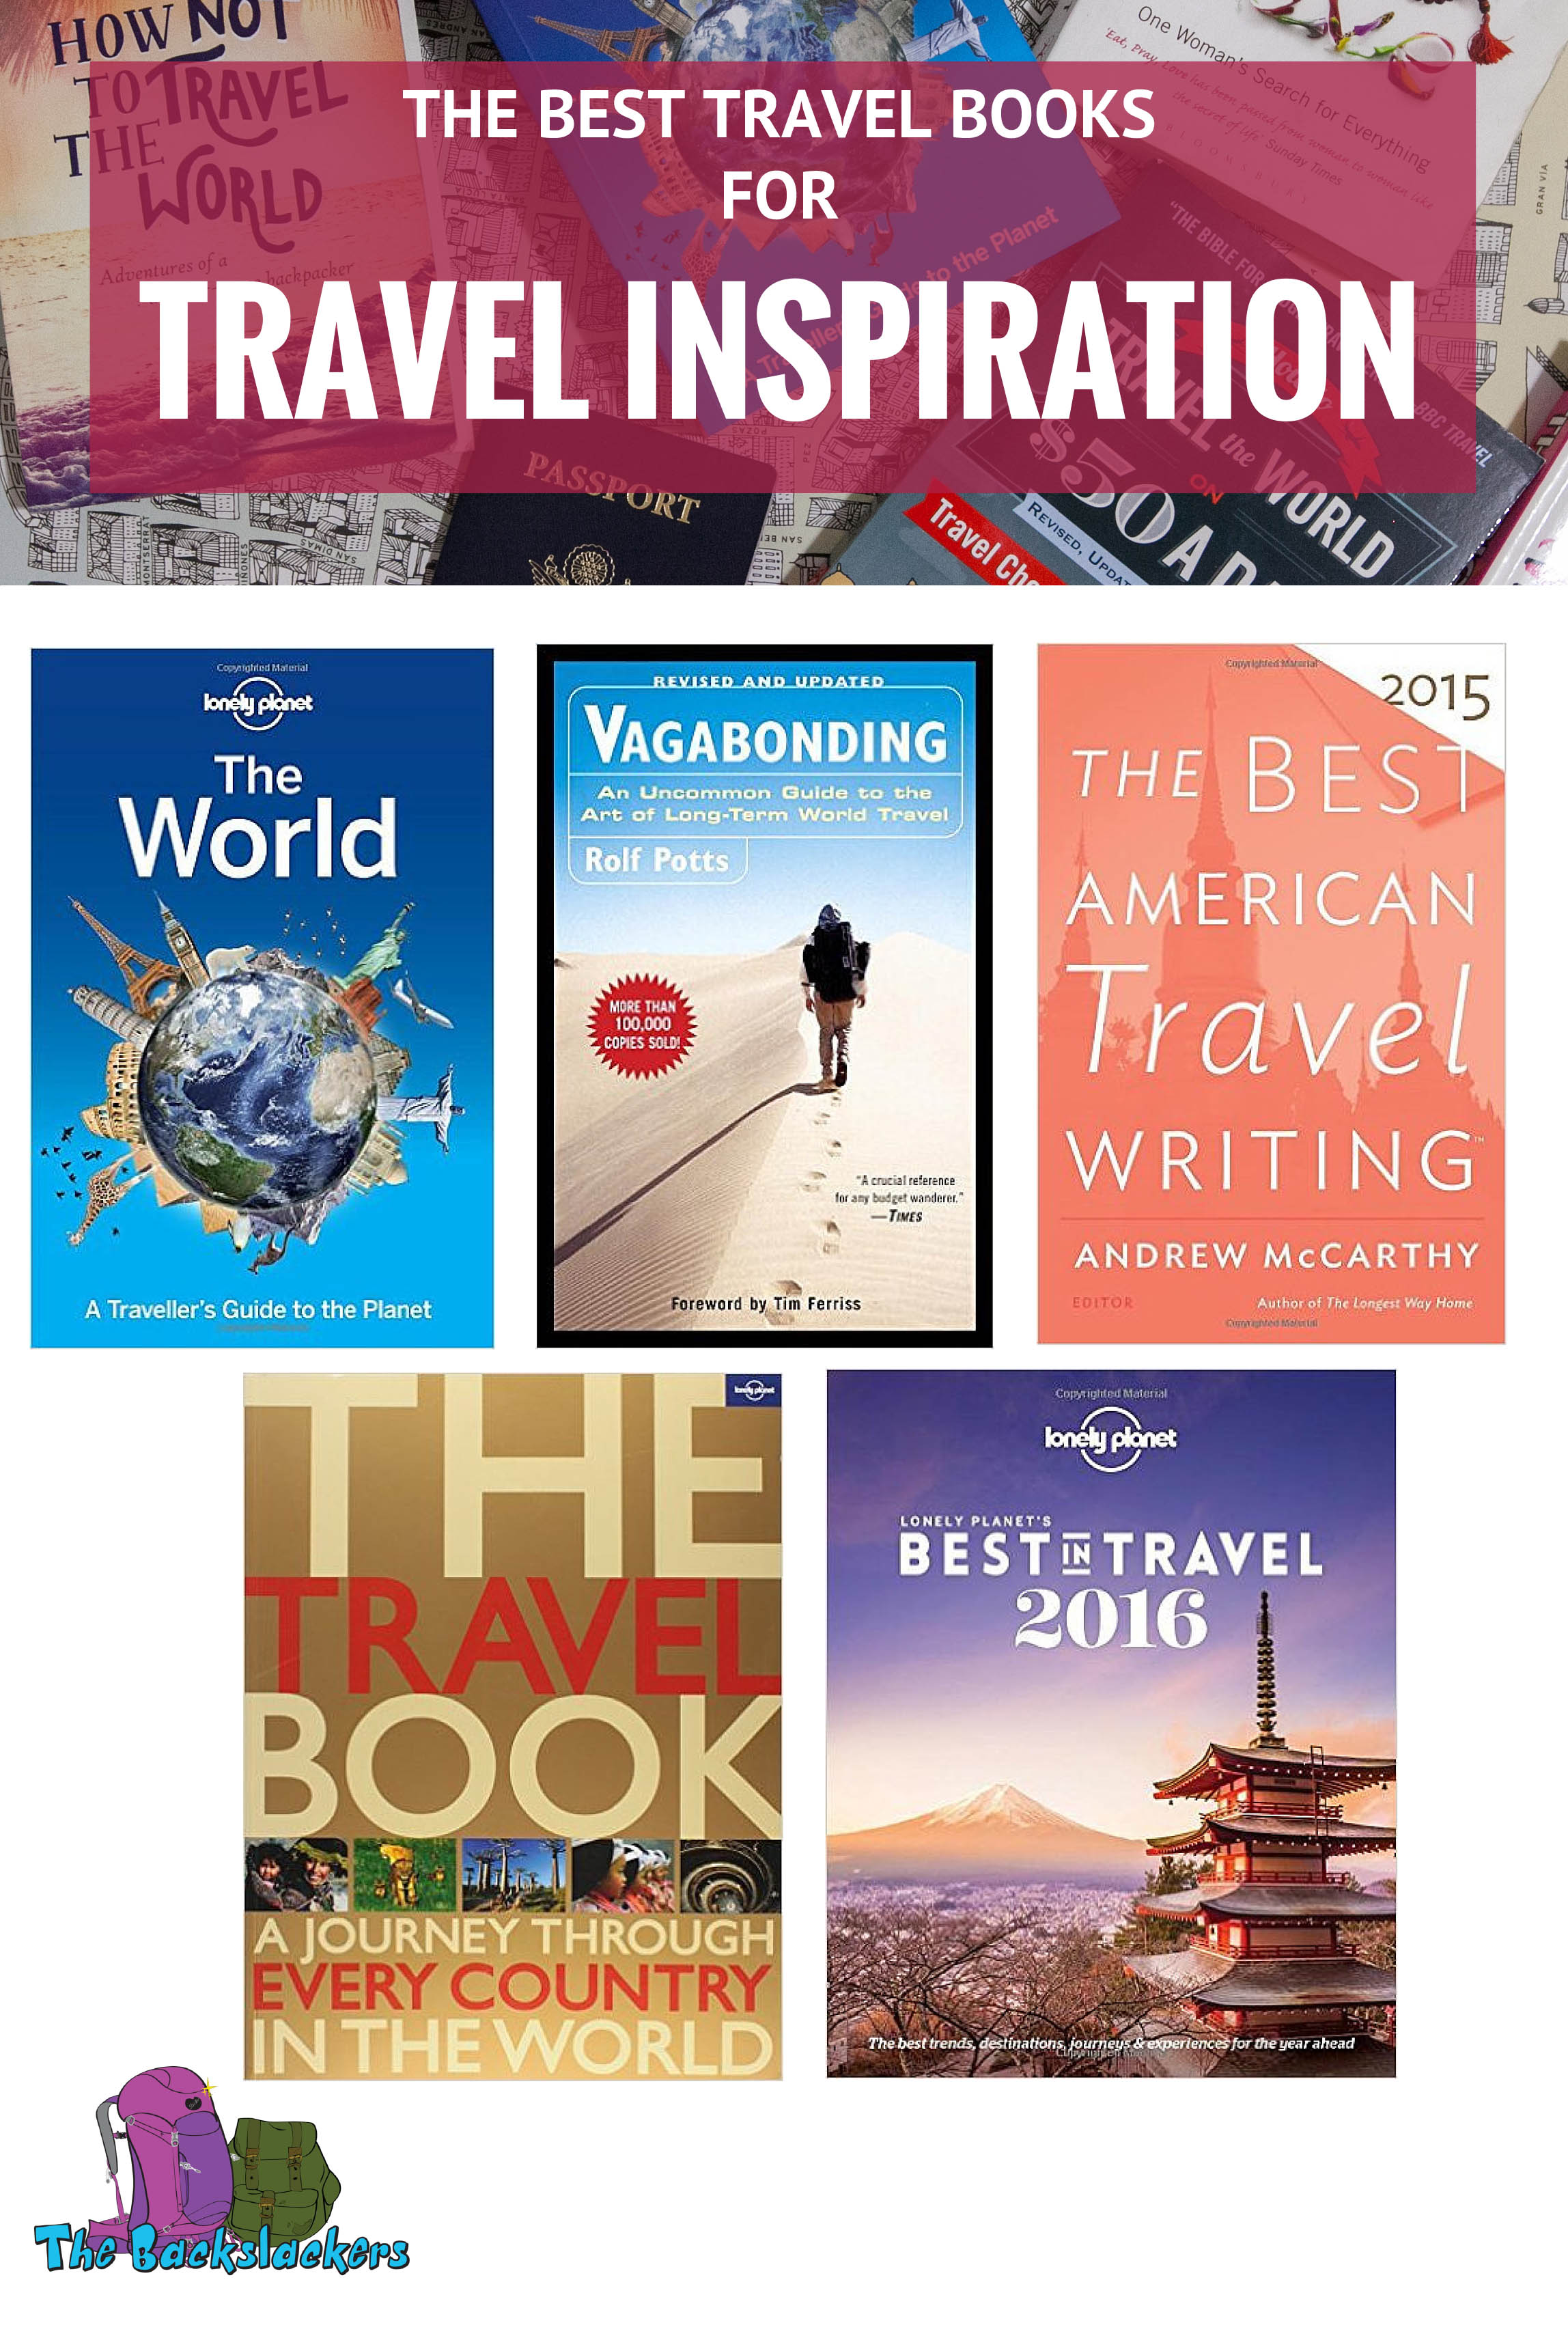 Best Travel Books for Travel Inspiration featuring Lonely Planet's The World, Vagabonding, The Best American Travel Writing, The Travel Book, and Lonely Planet's Best of Travel 2016.